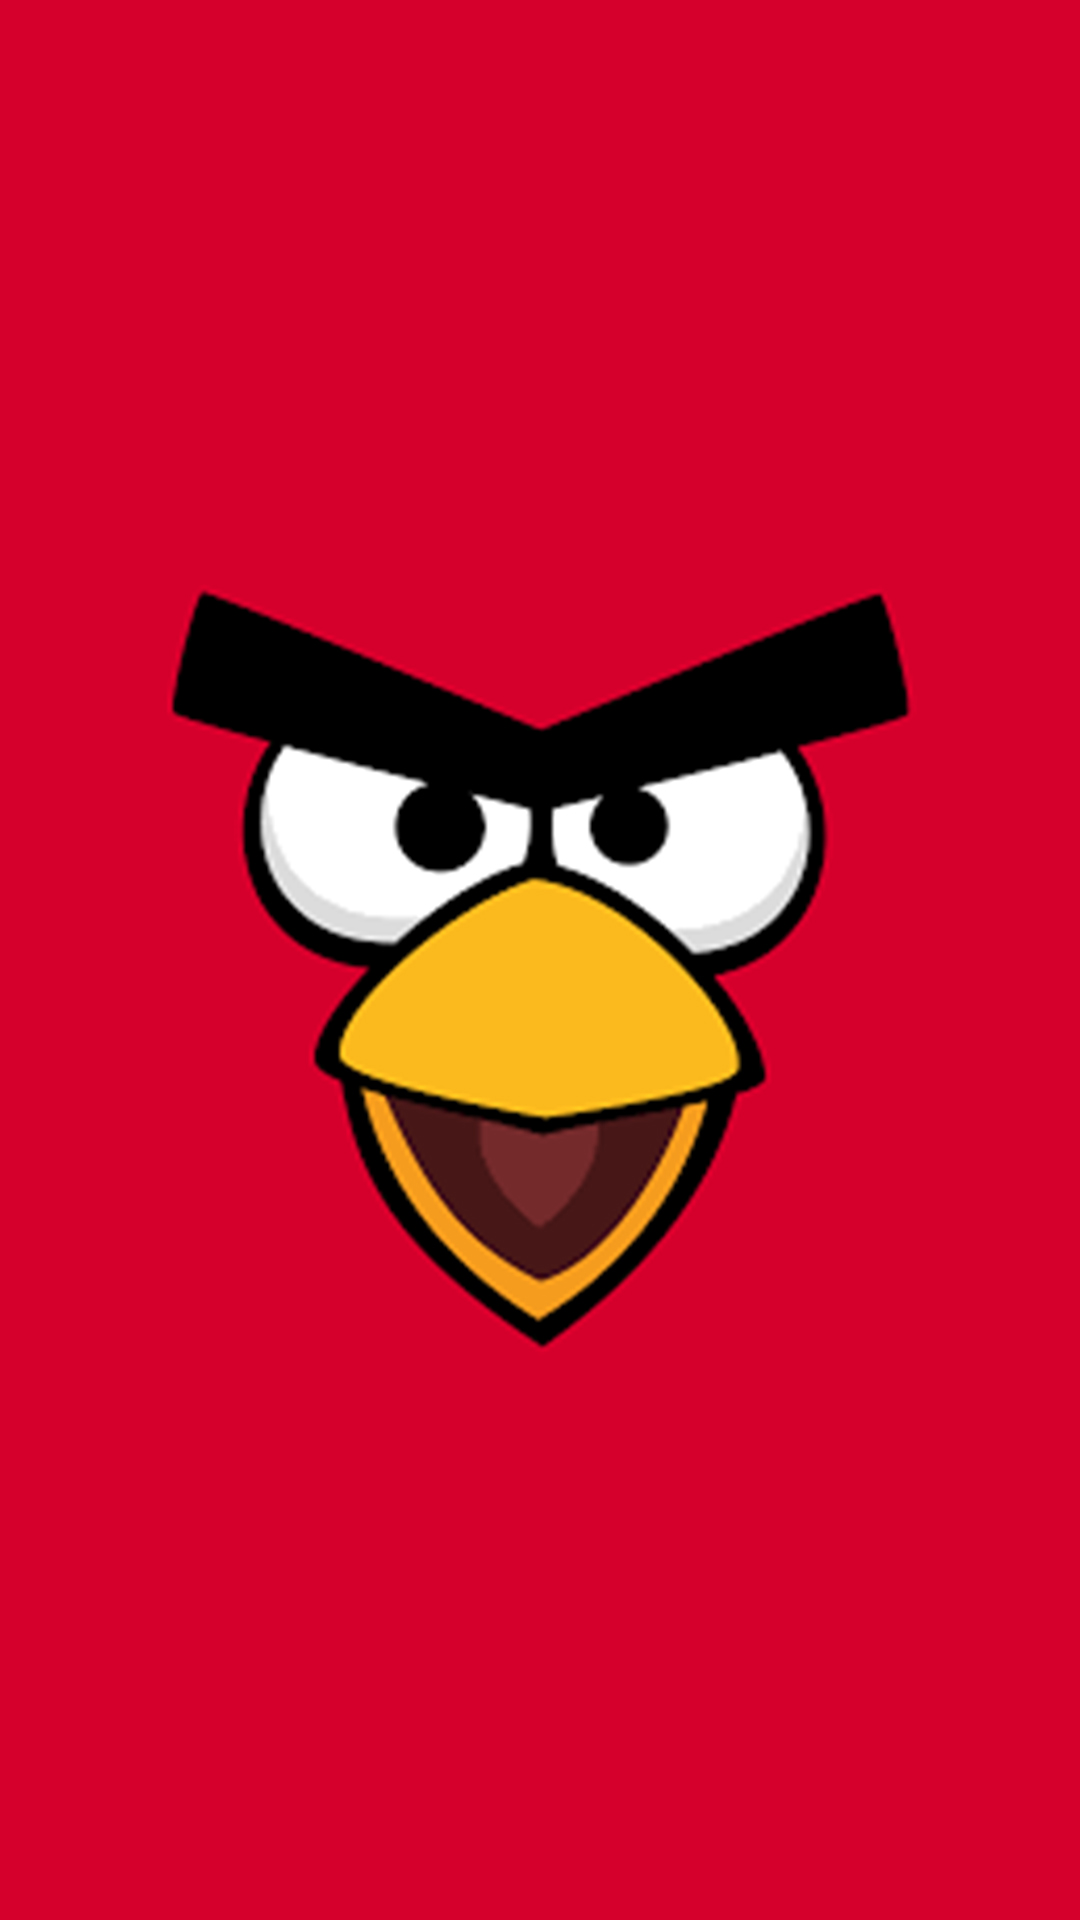 Great Wallpaper Angry Mobile Hd - angry-birds-3354  Trends_108277      .jpg